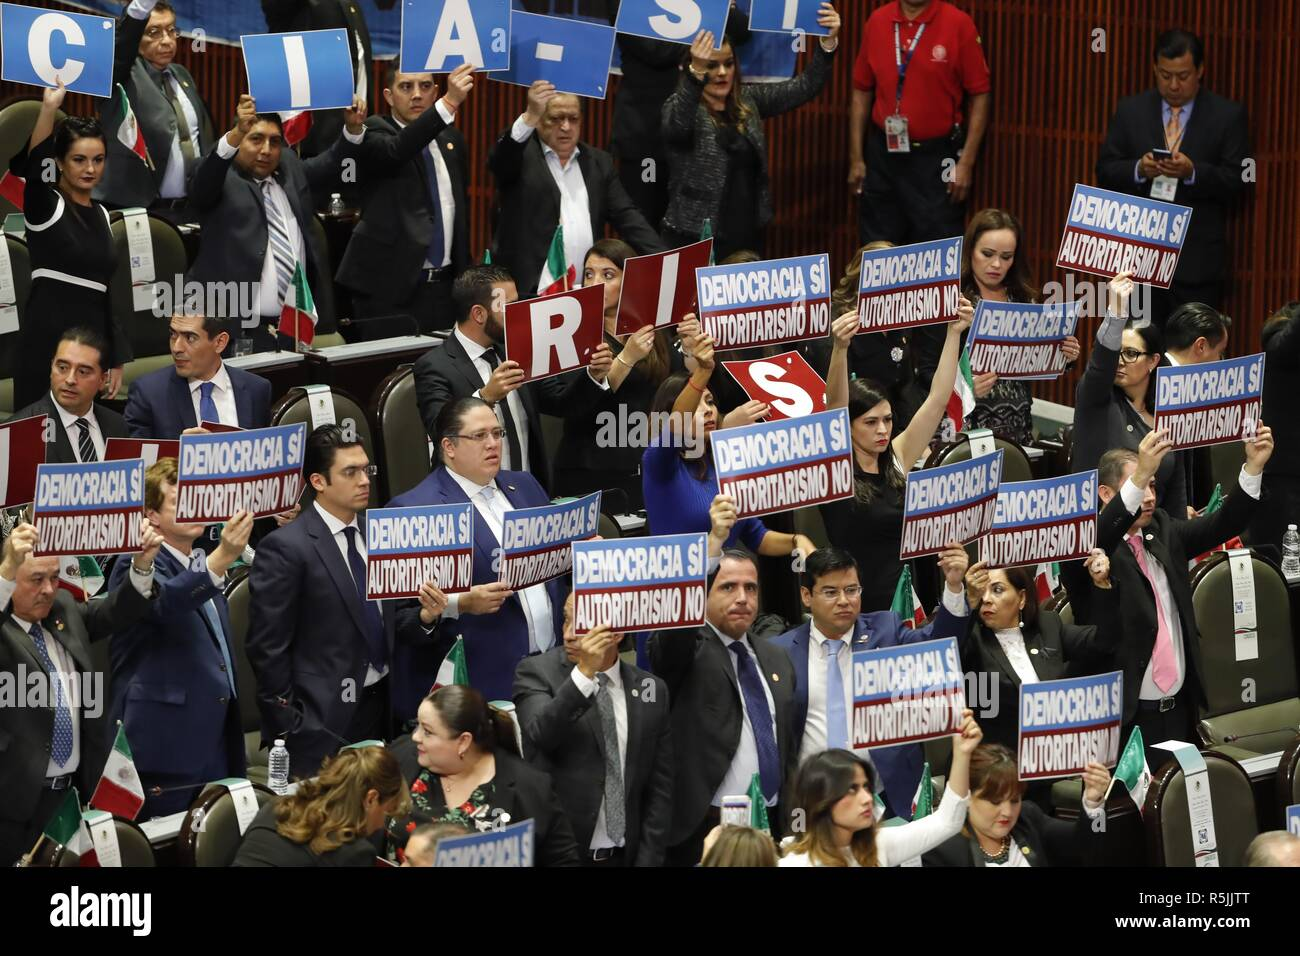 Mexico City, Mexico. 01st Dec, 2018. Mexican lawmakers show signs that read 'Democracy yes. Authoritarianism no' during the investiture ceremony of Mexico's new President Andres Manuel Lopez Obrador, at the Mexican Congress, in Mexico City, Mexico, 01 December 2018. Credit: Jose Mendez/EFE/Alamy Live News - Stock Image